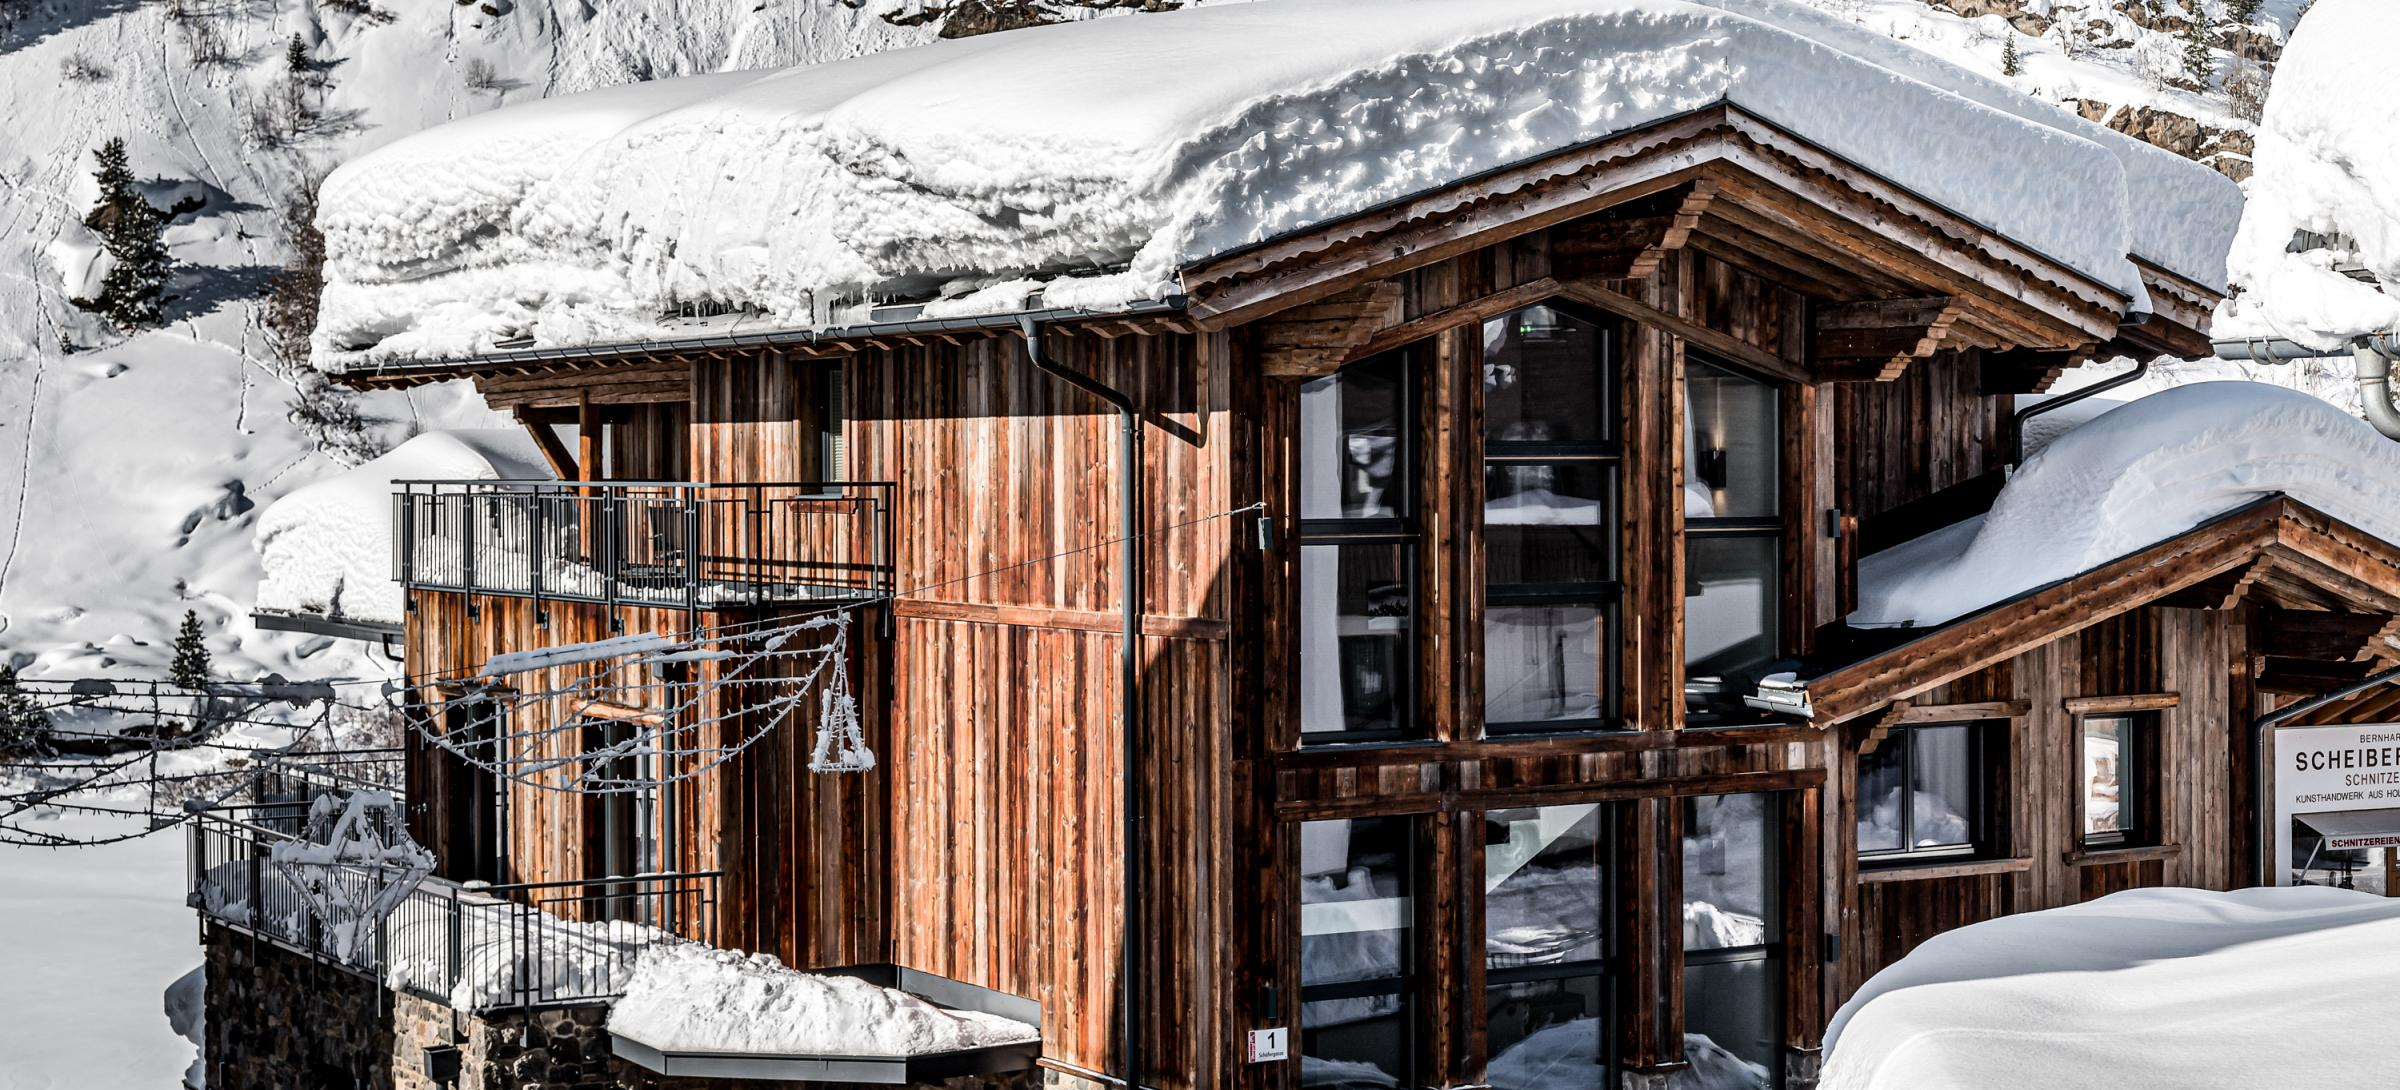 private holiday apartment obergurgl edelweiss | © Alexander Maria Lohmann